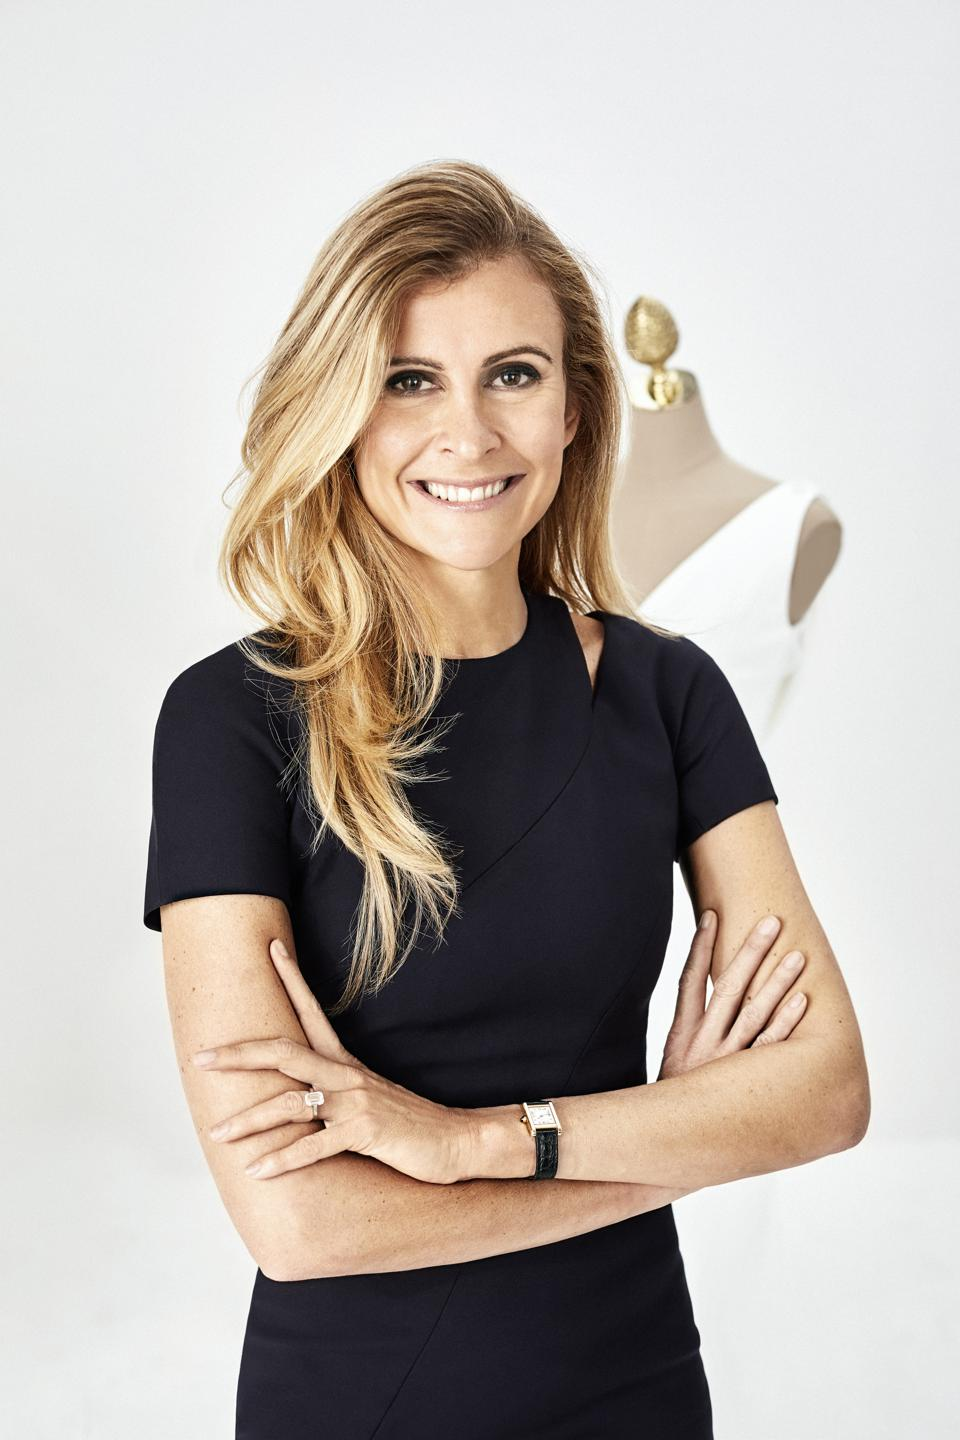 Photo portrait of Amandine Ohayon, the first female CEO at Pronovias Group.